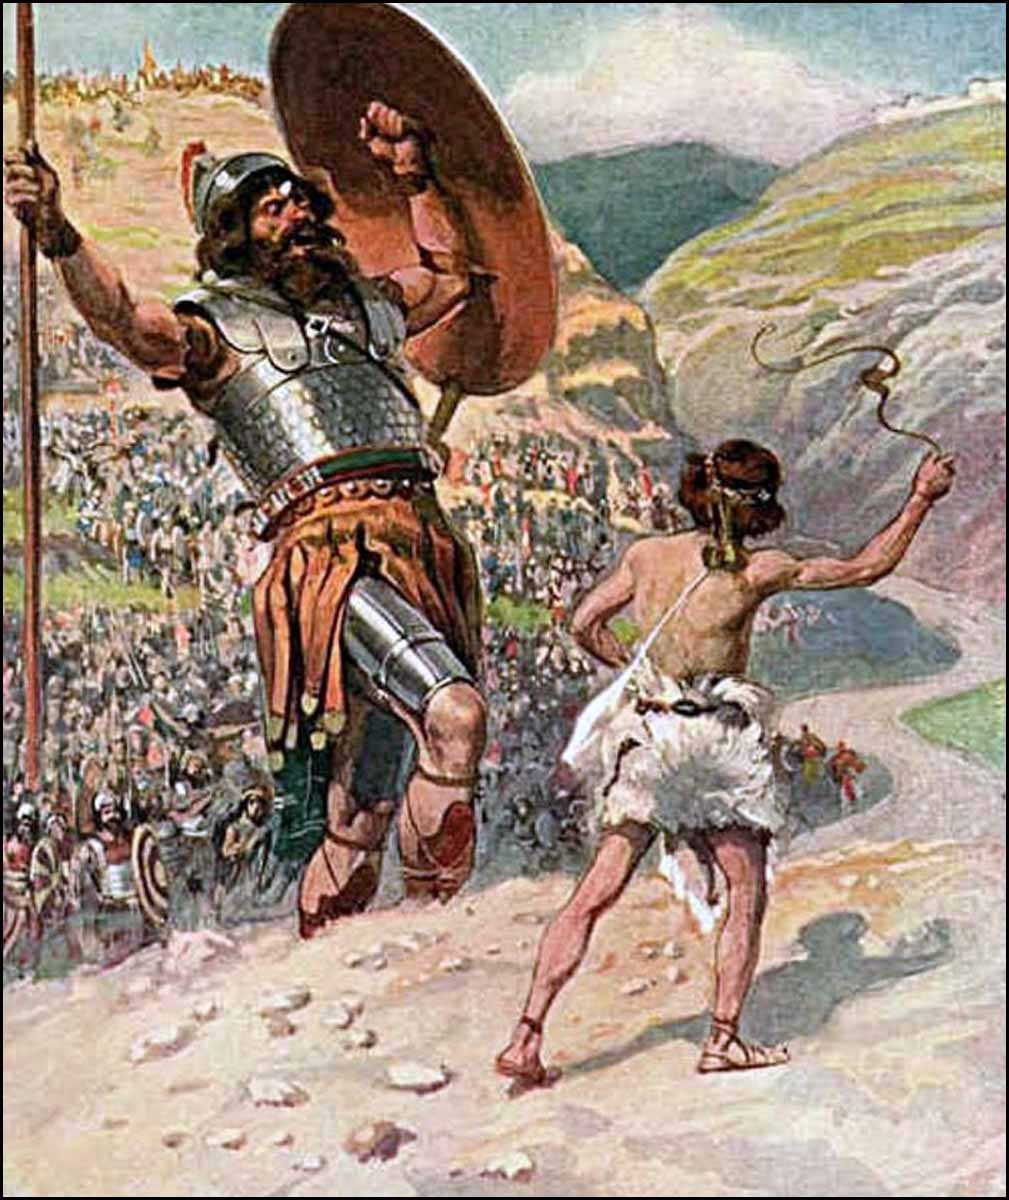 https://i2.wp.com/www.jesuswalk.com/david/images/tissot-david-slings-the-stone-1009x1500x300.jpg